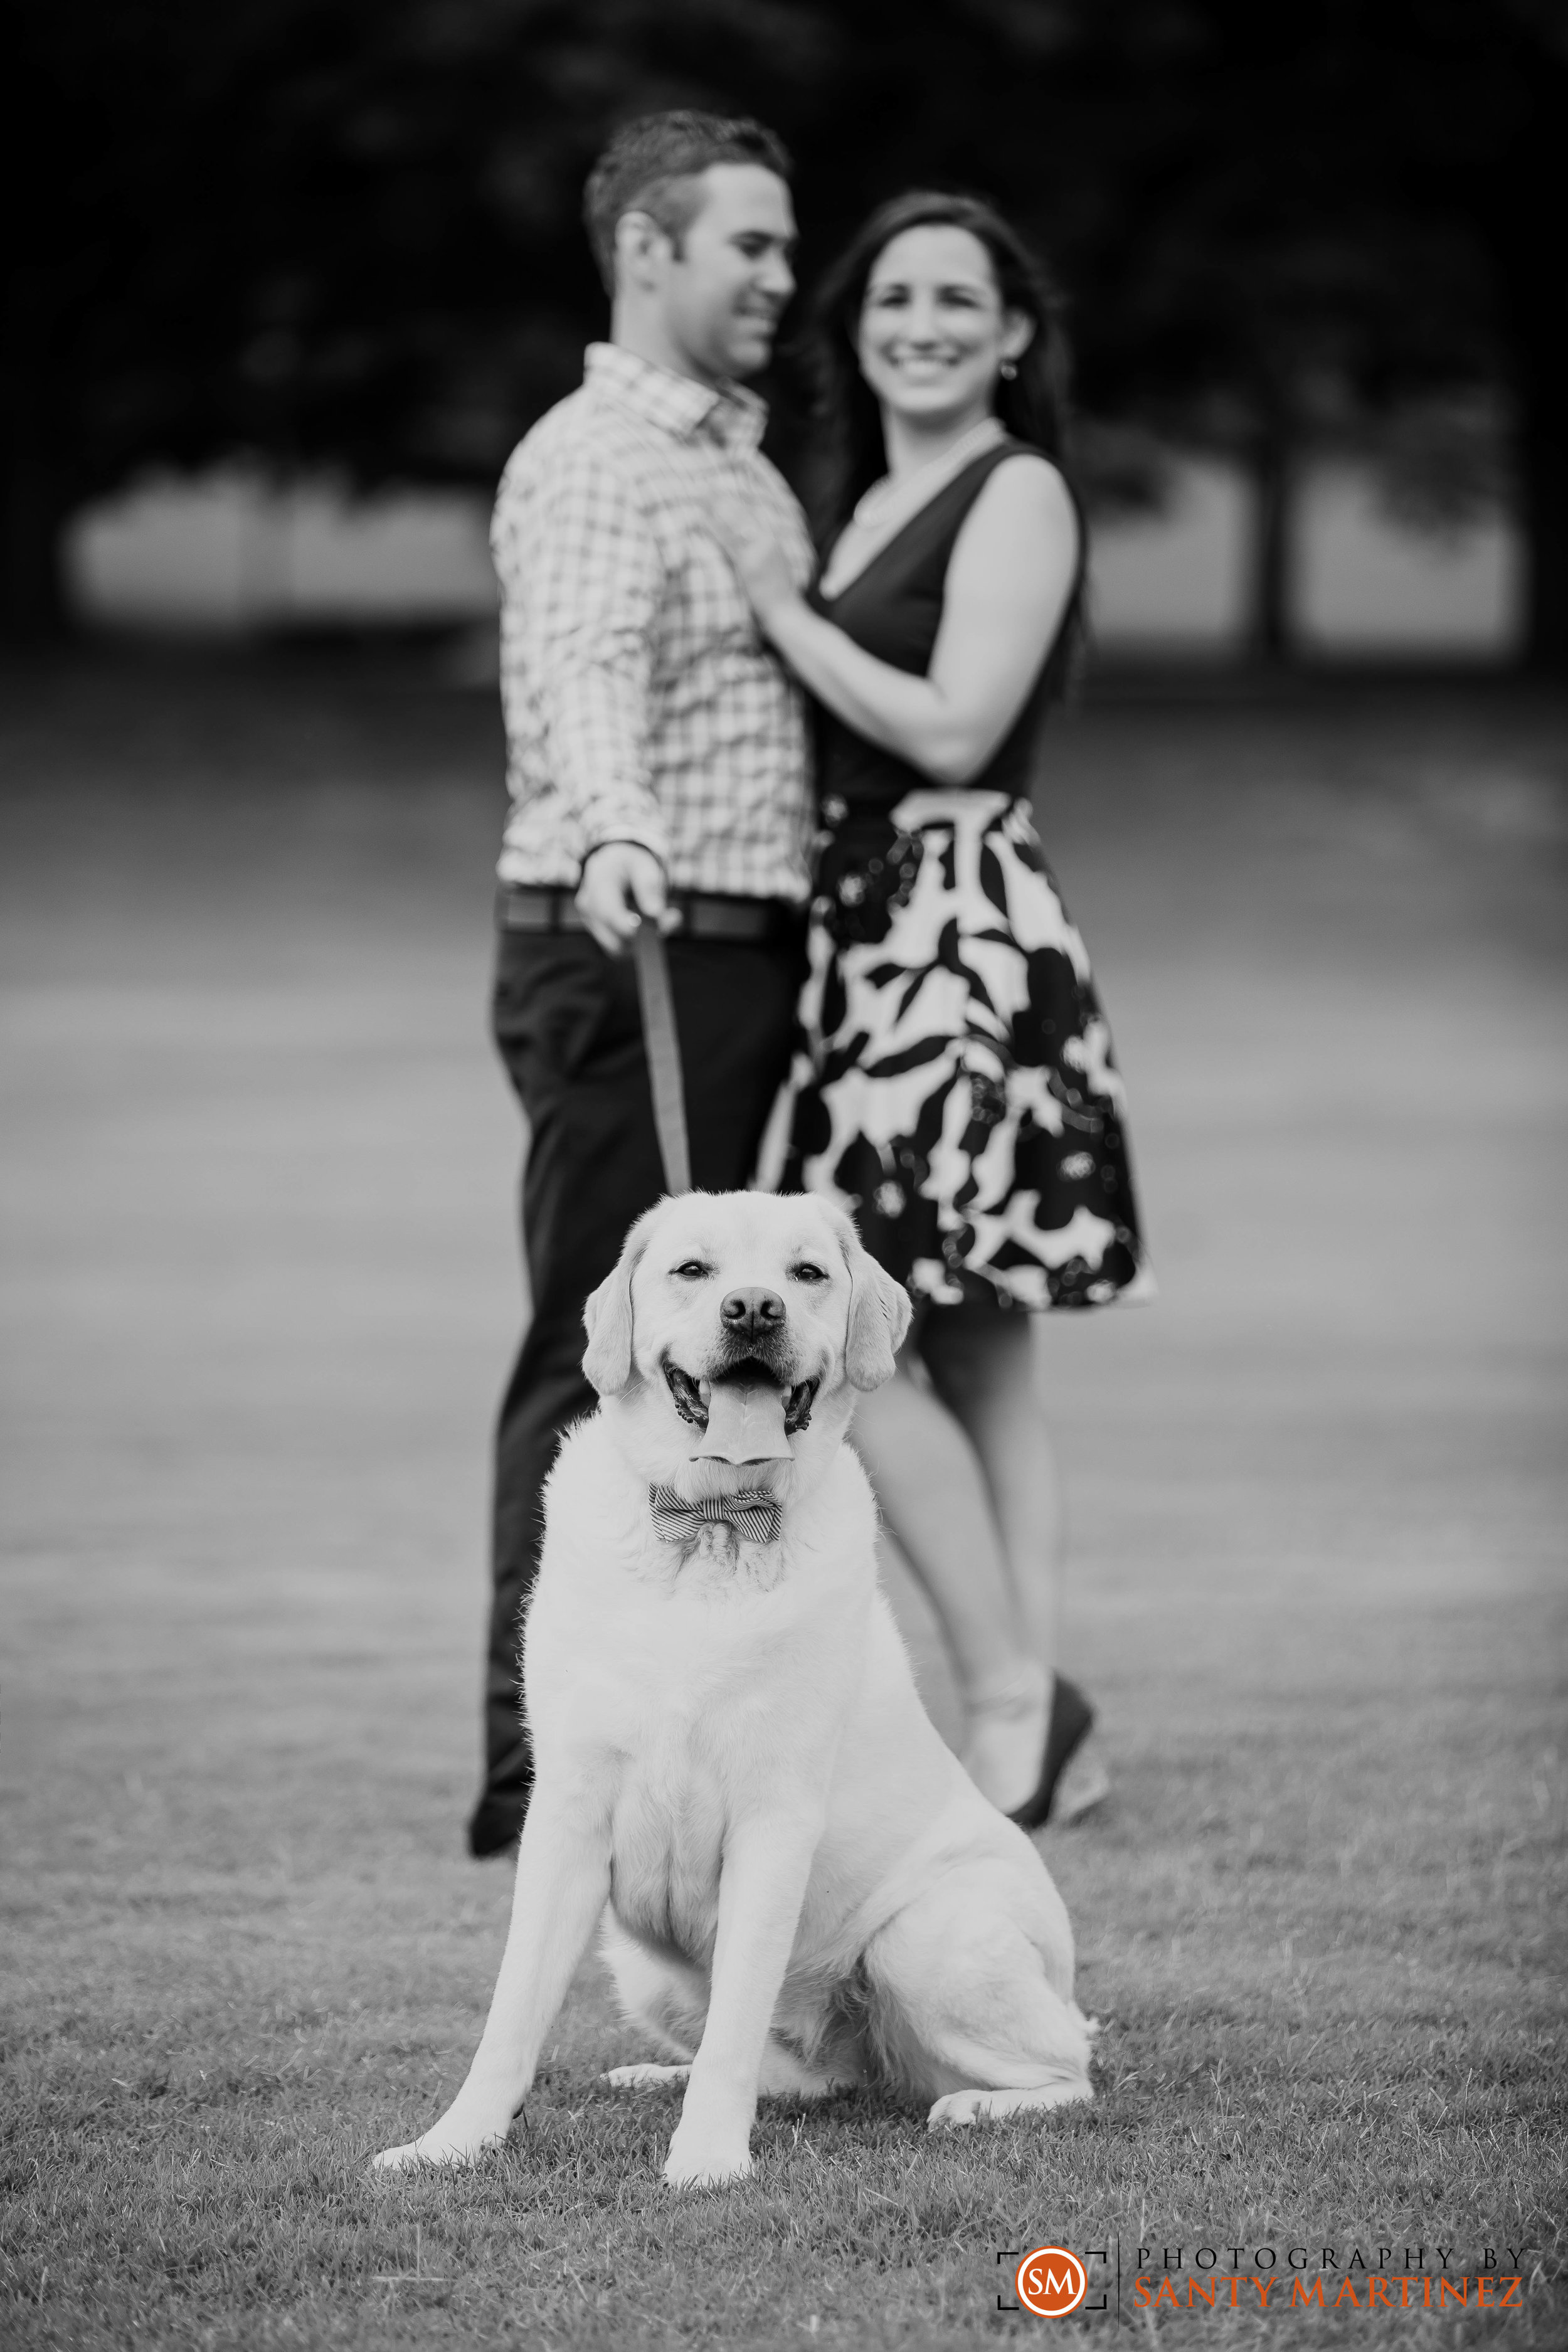 Engagement Session Piedmont Park - Santy Martinez Photography-12.jpg